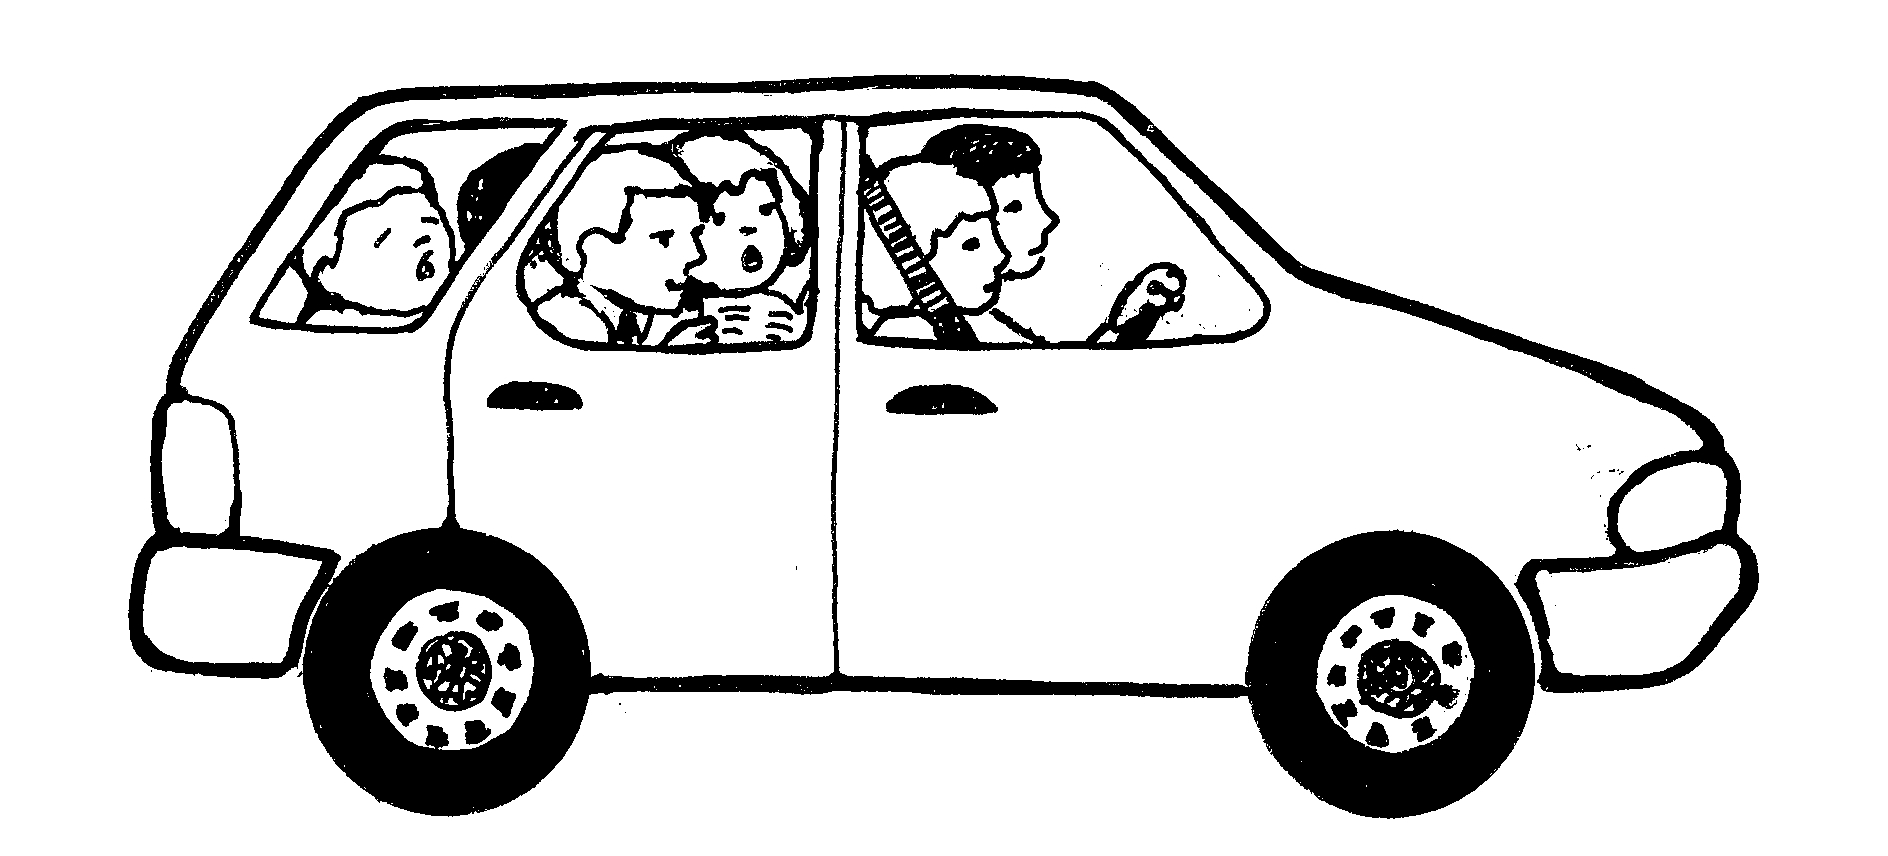 3 people in car clipart svg transparent library Free In Car Cliparts, Download Free Clip Art, Free Clip Art on ... svg transparent library